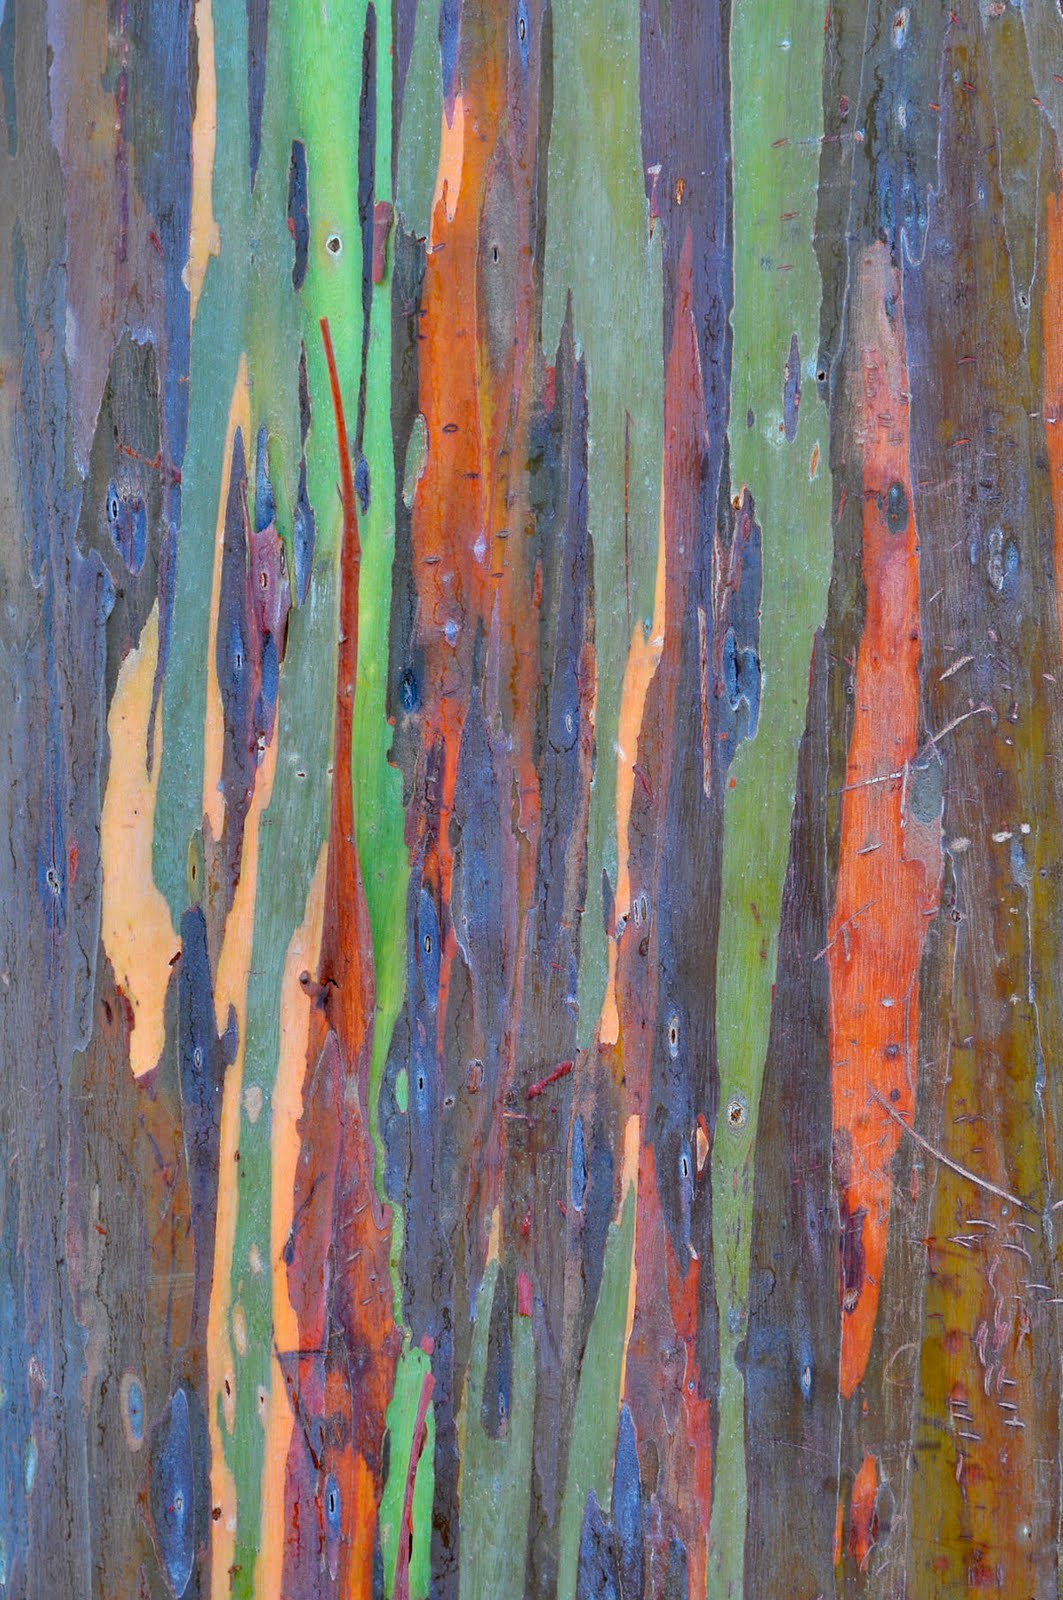 gum tree bark Google Search (With images) Rainbow